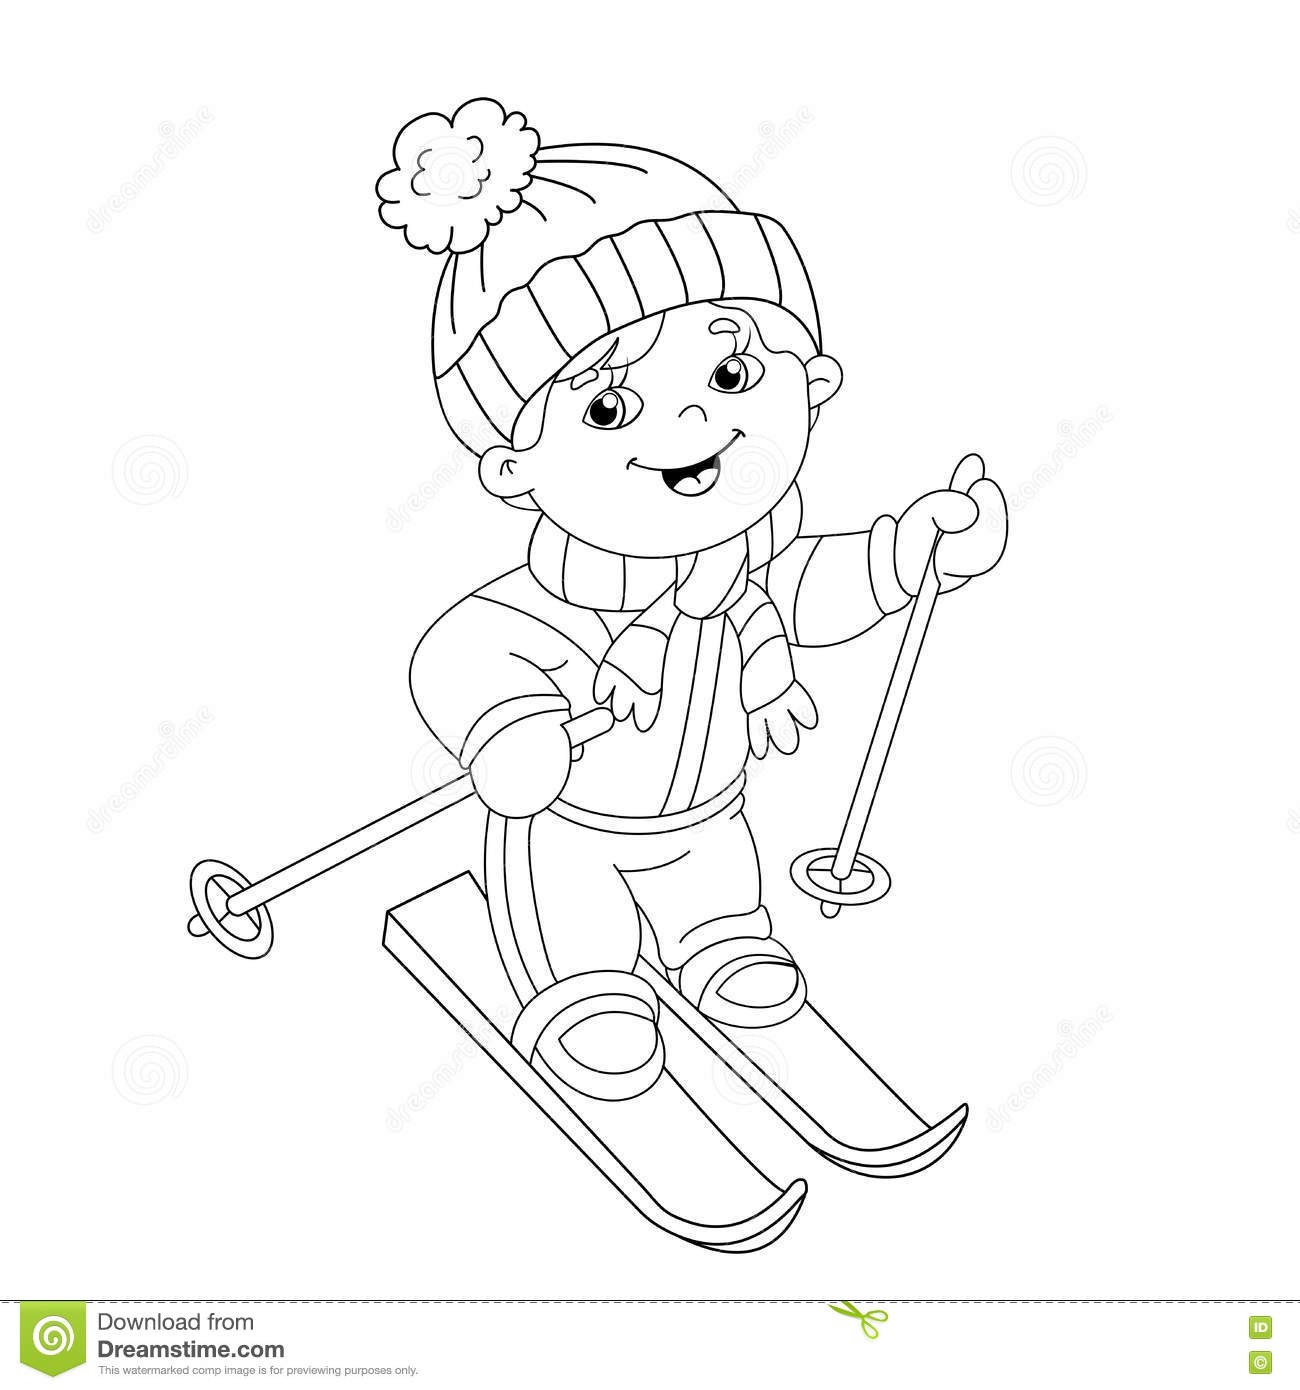 Coloring Page Outline Of Cartoon Boy Riding On Skis Stock